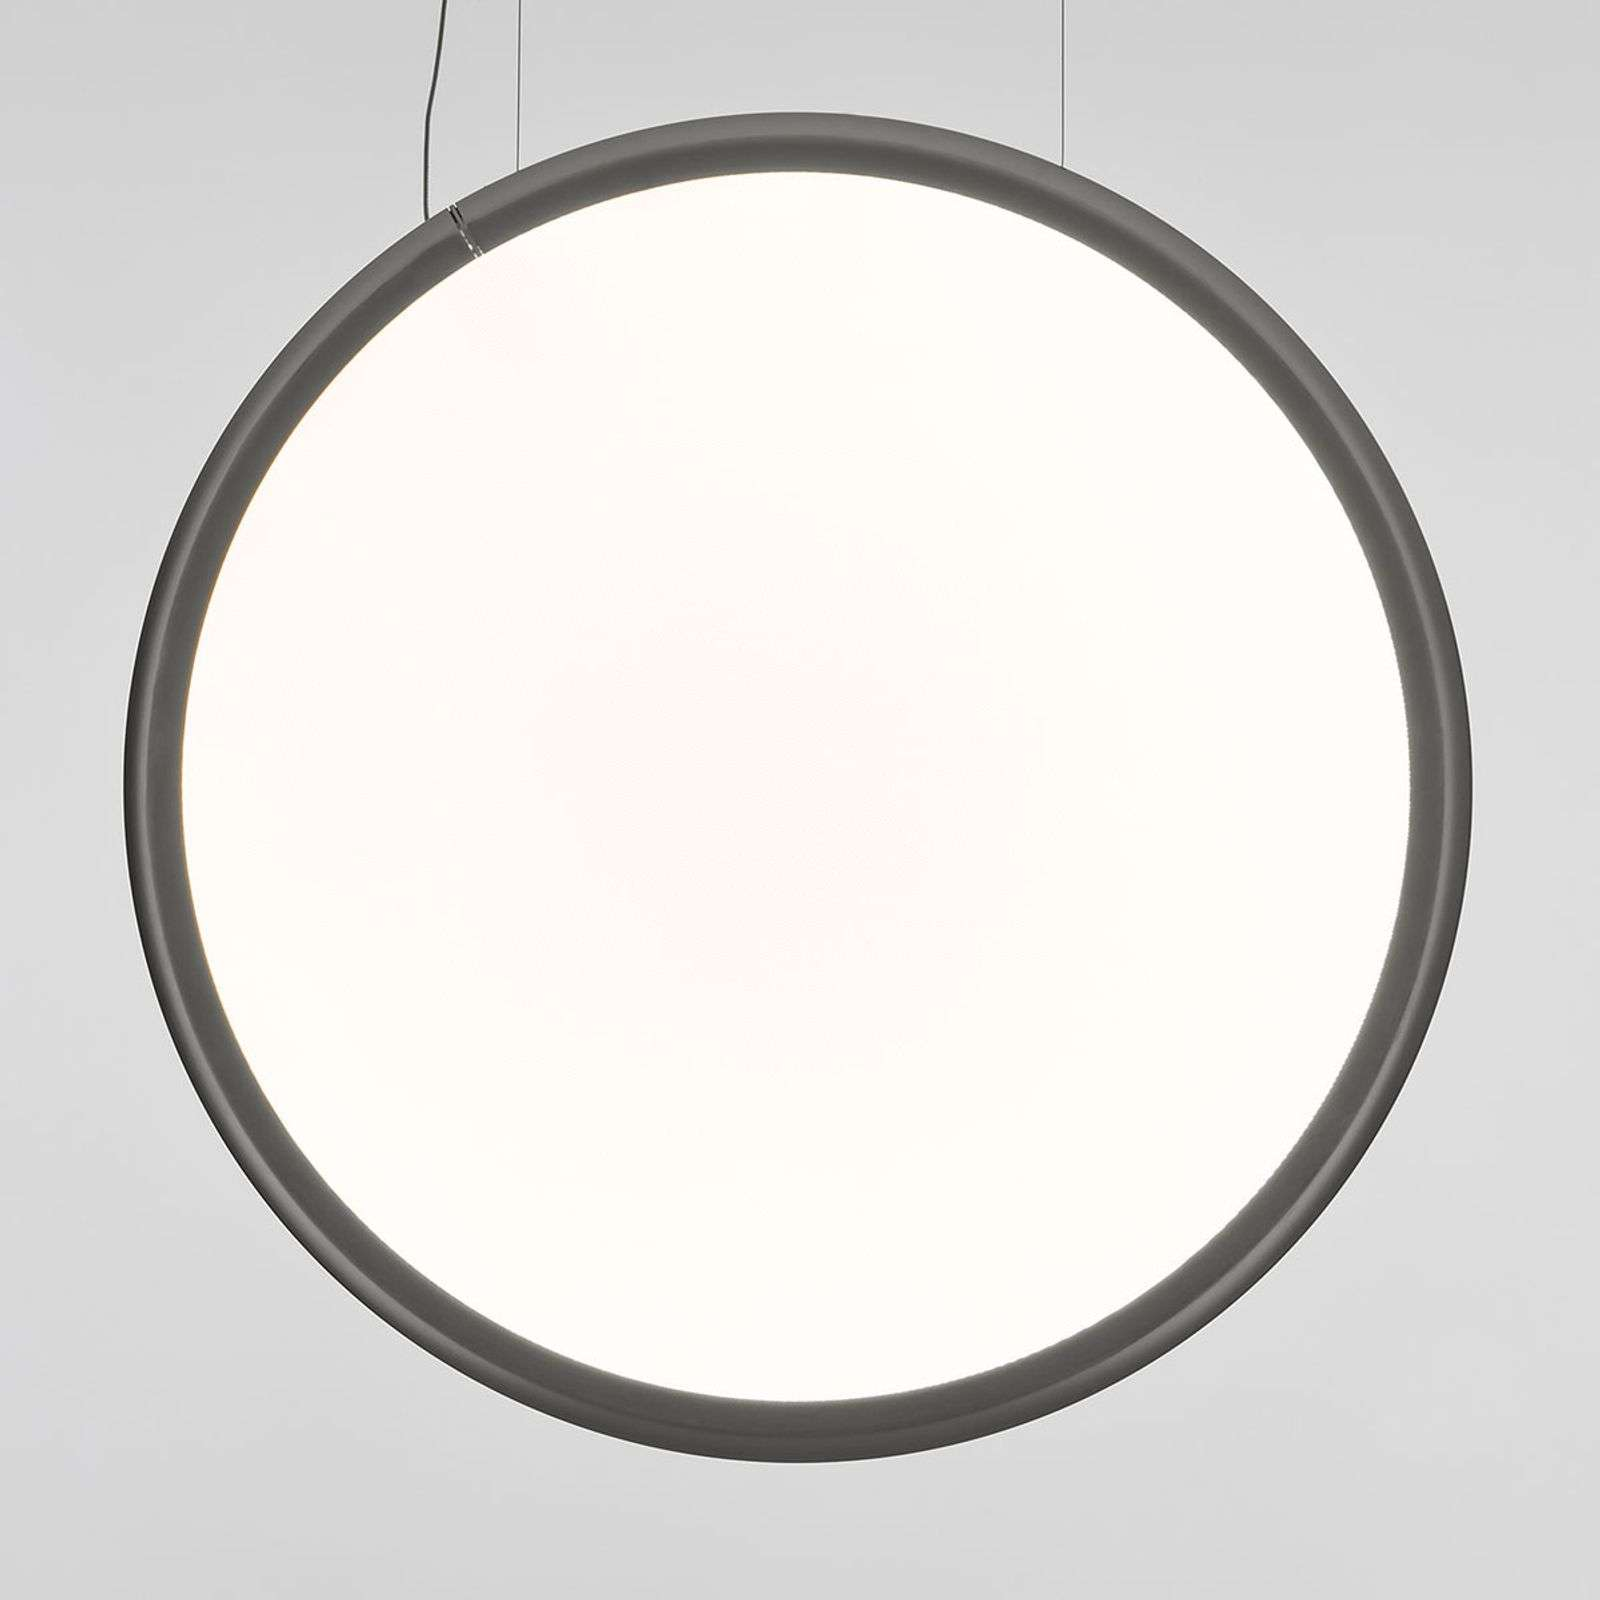 Artemide Discovery Vertical LED hanglamp 140 cm